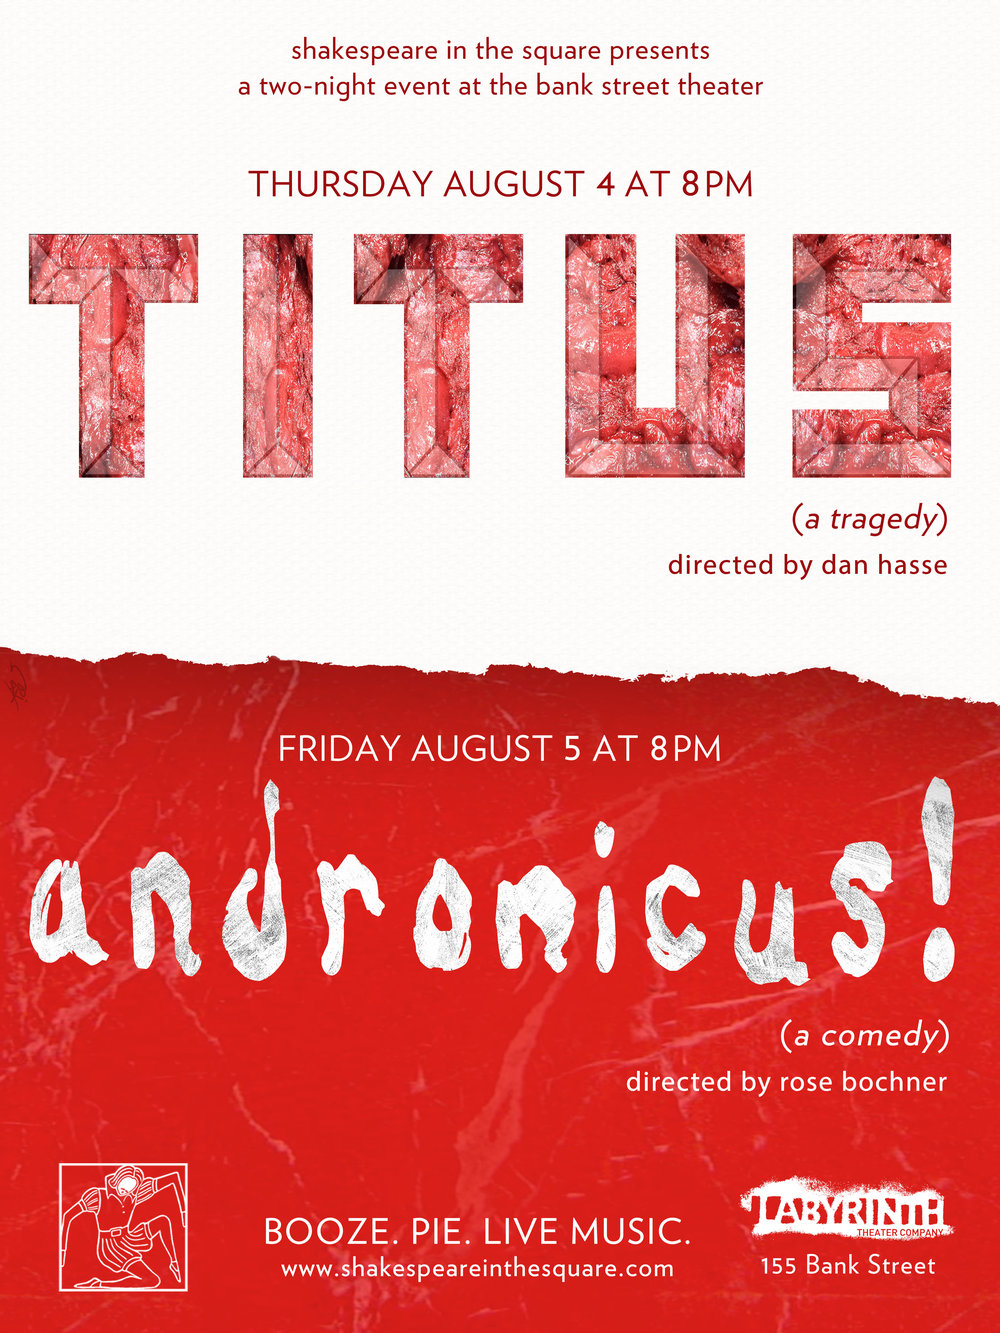 Titus / andronicus!